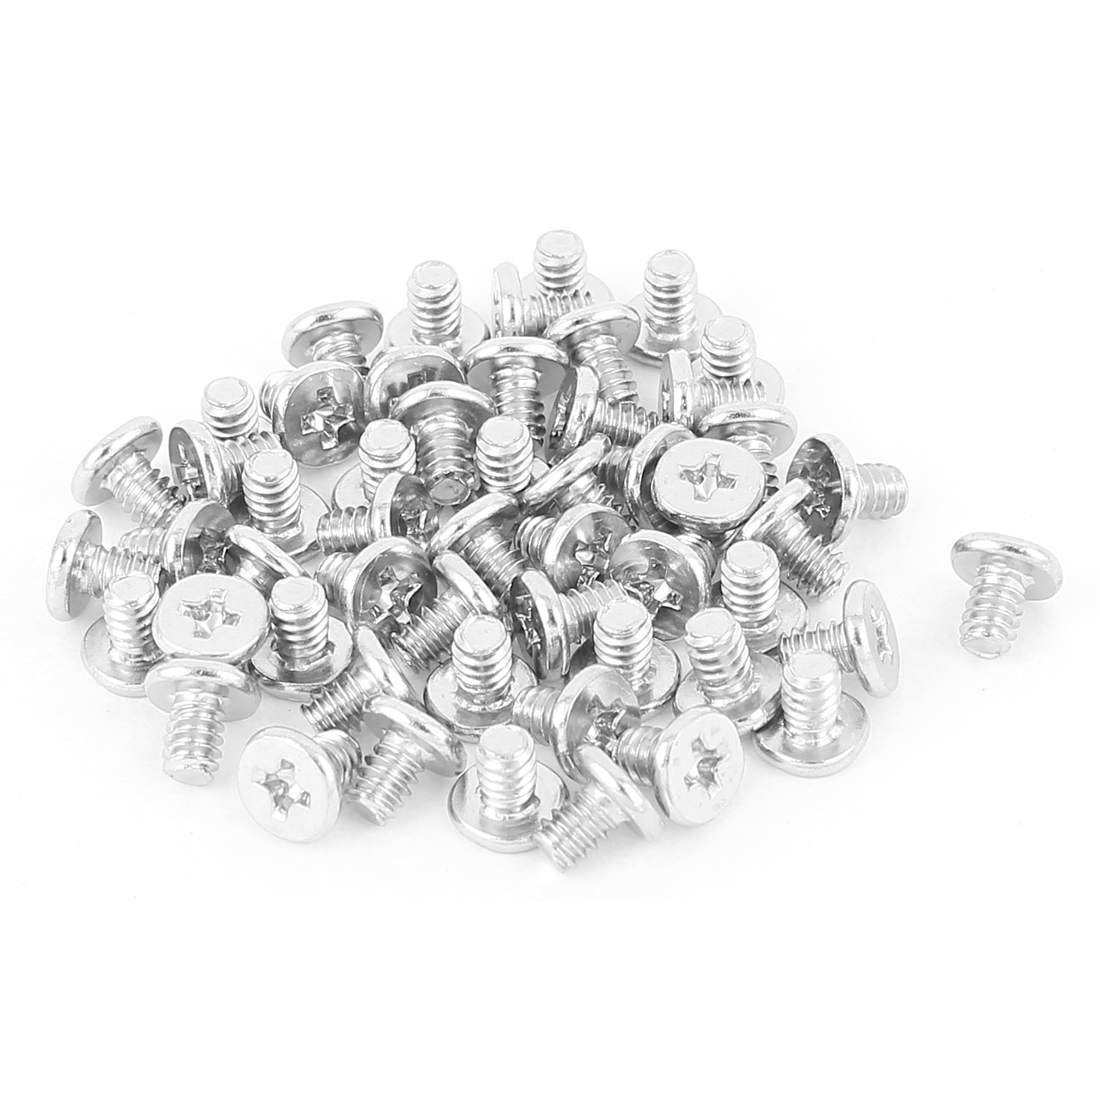 6#-32x5 Nickel Plated Countersunk Phillips Flat Head Screws Silver Tone 50Pcs